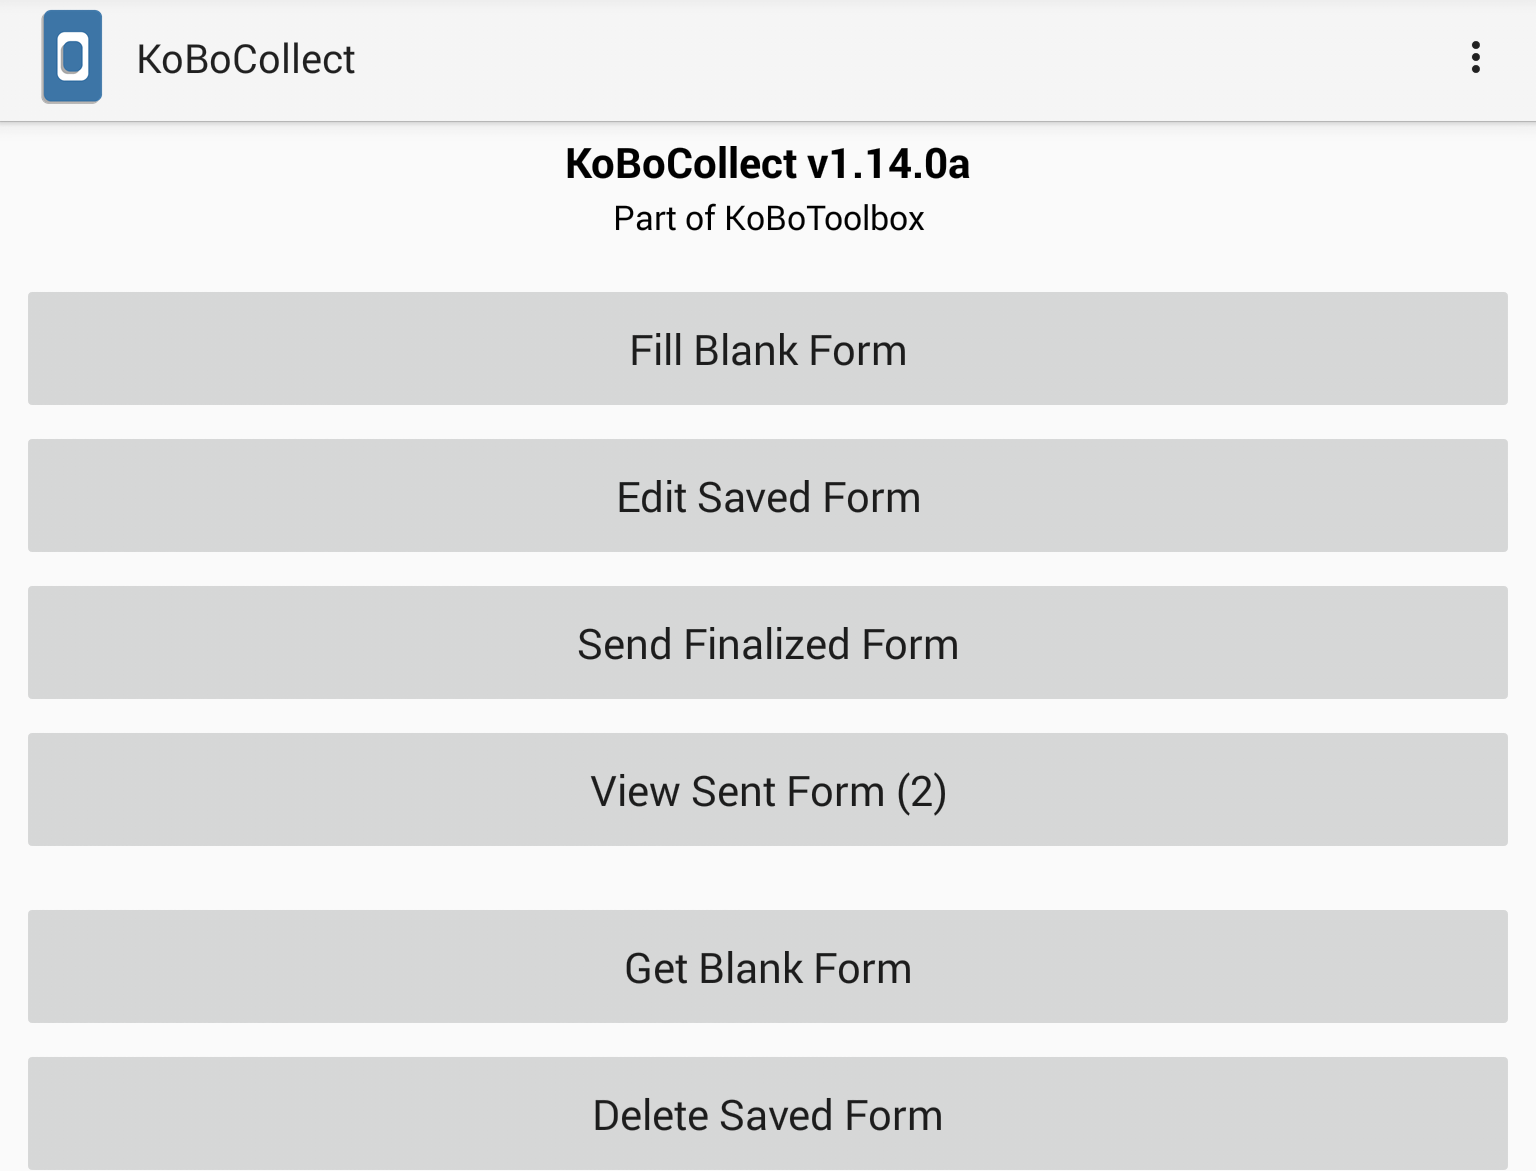 How to create a KoBoToolbox account for KoBo data collection